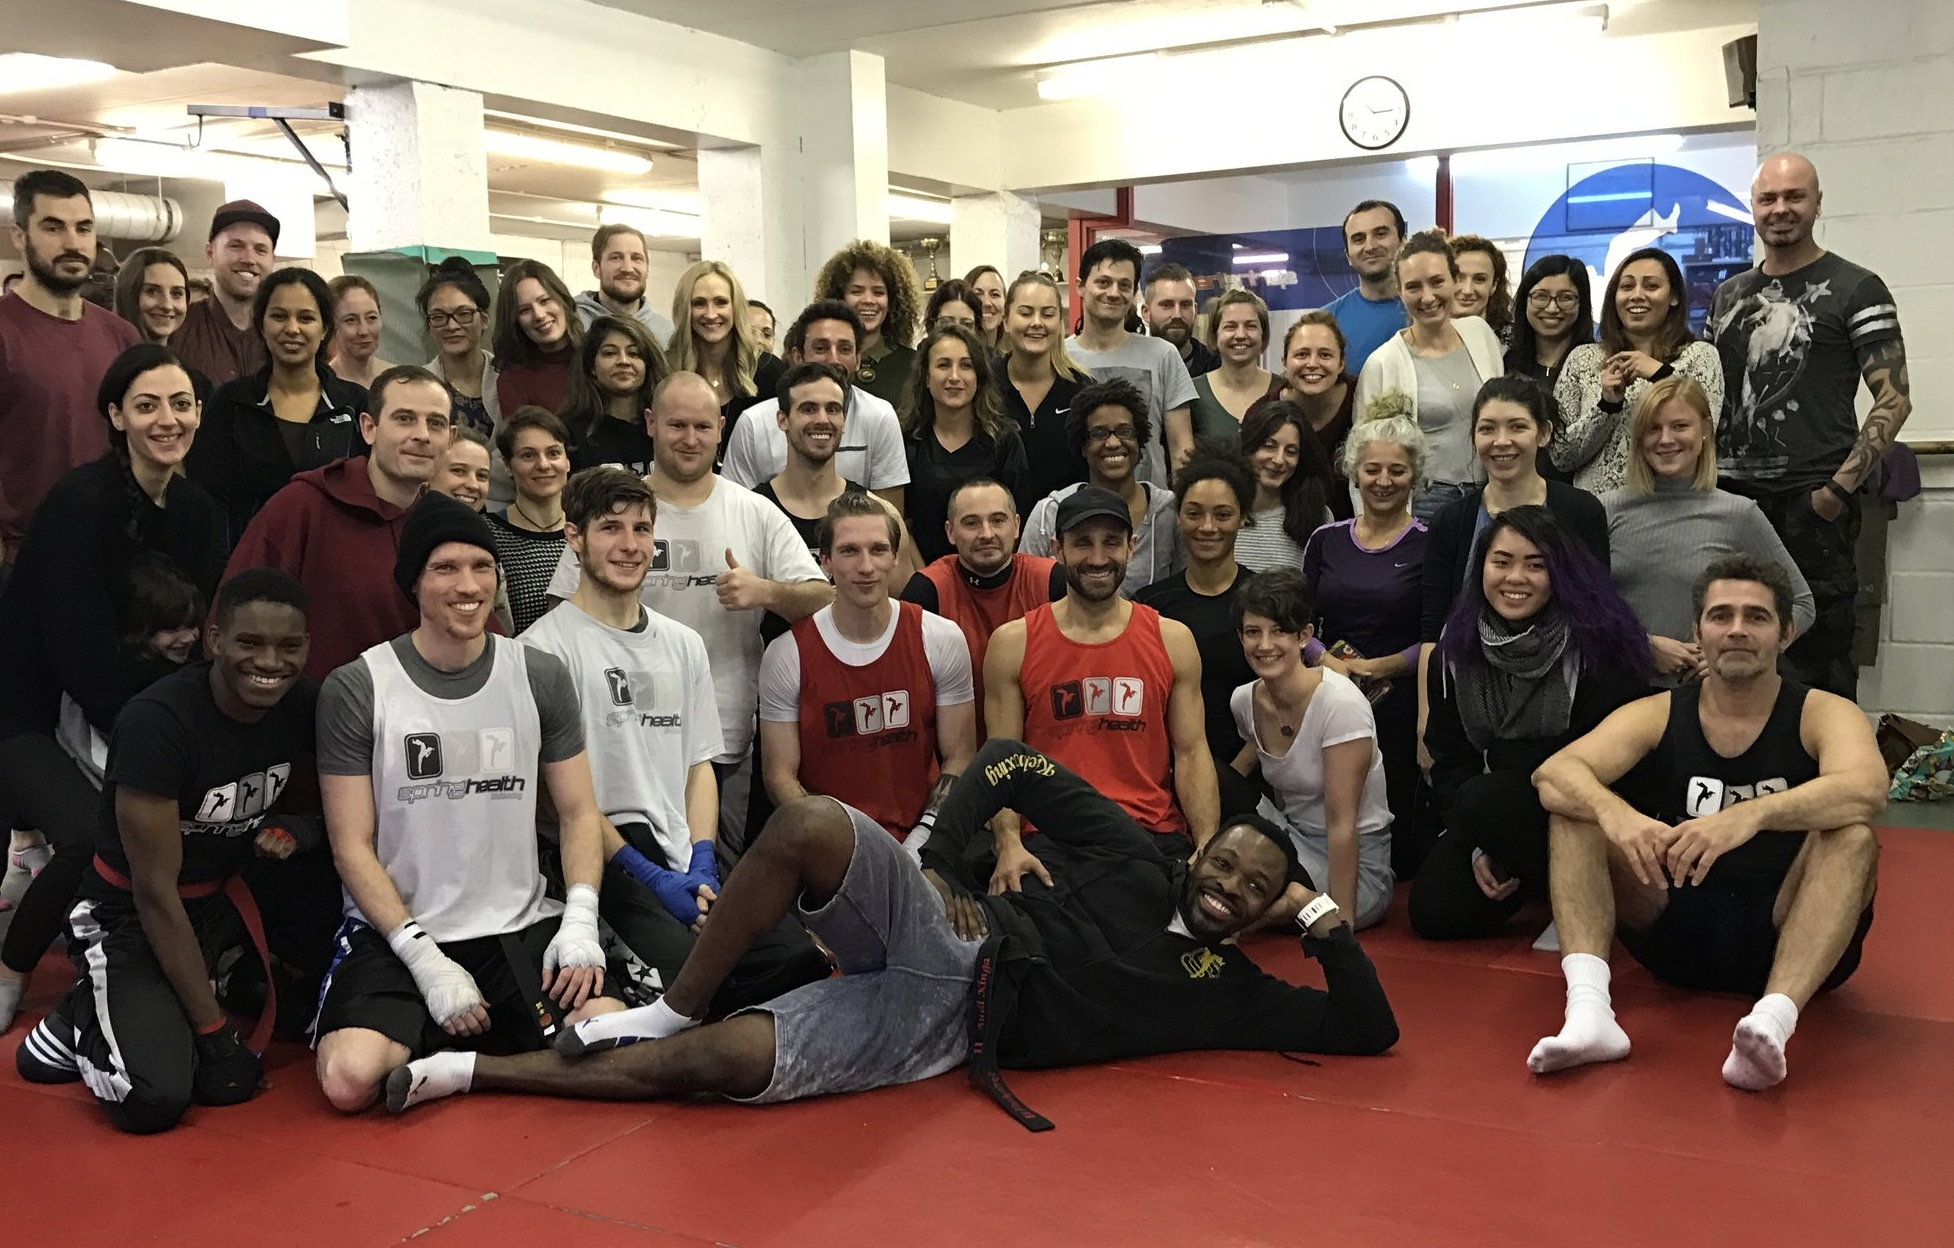 About Springhealth Kickboxing